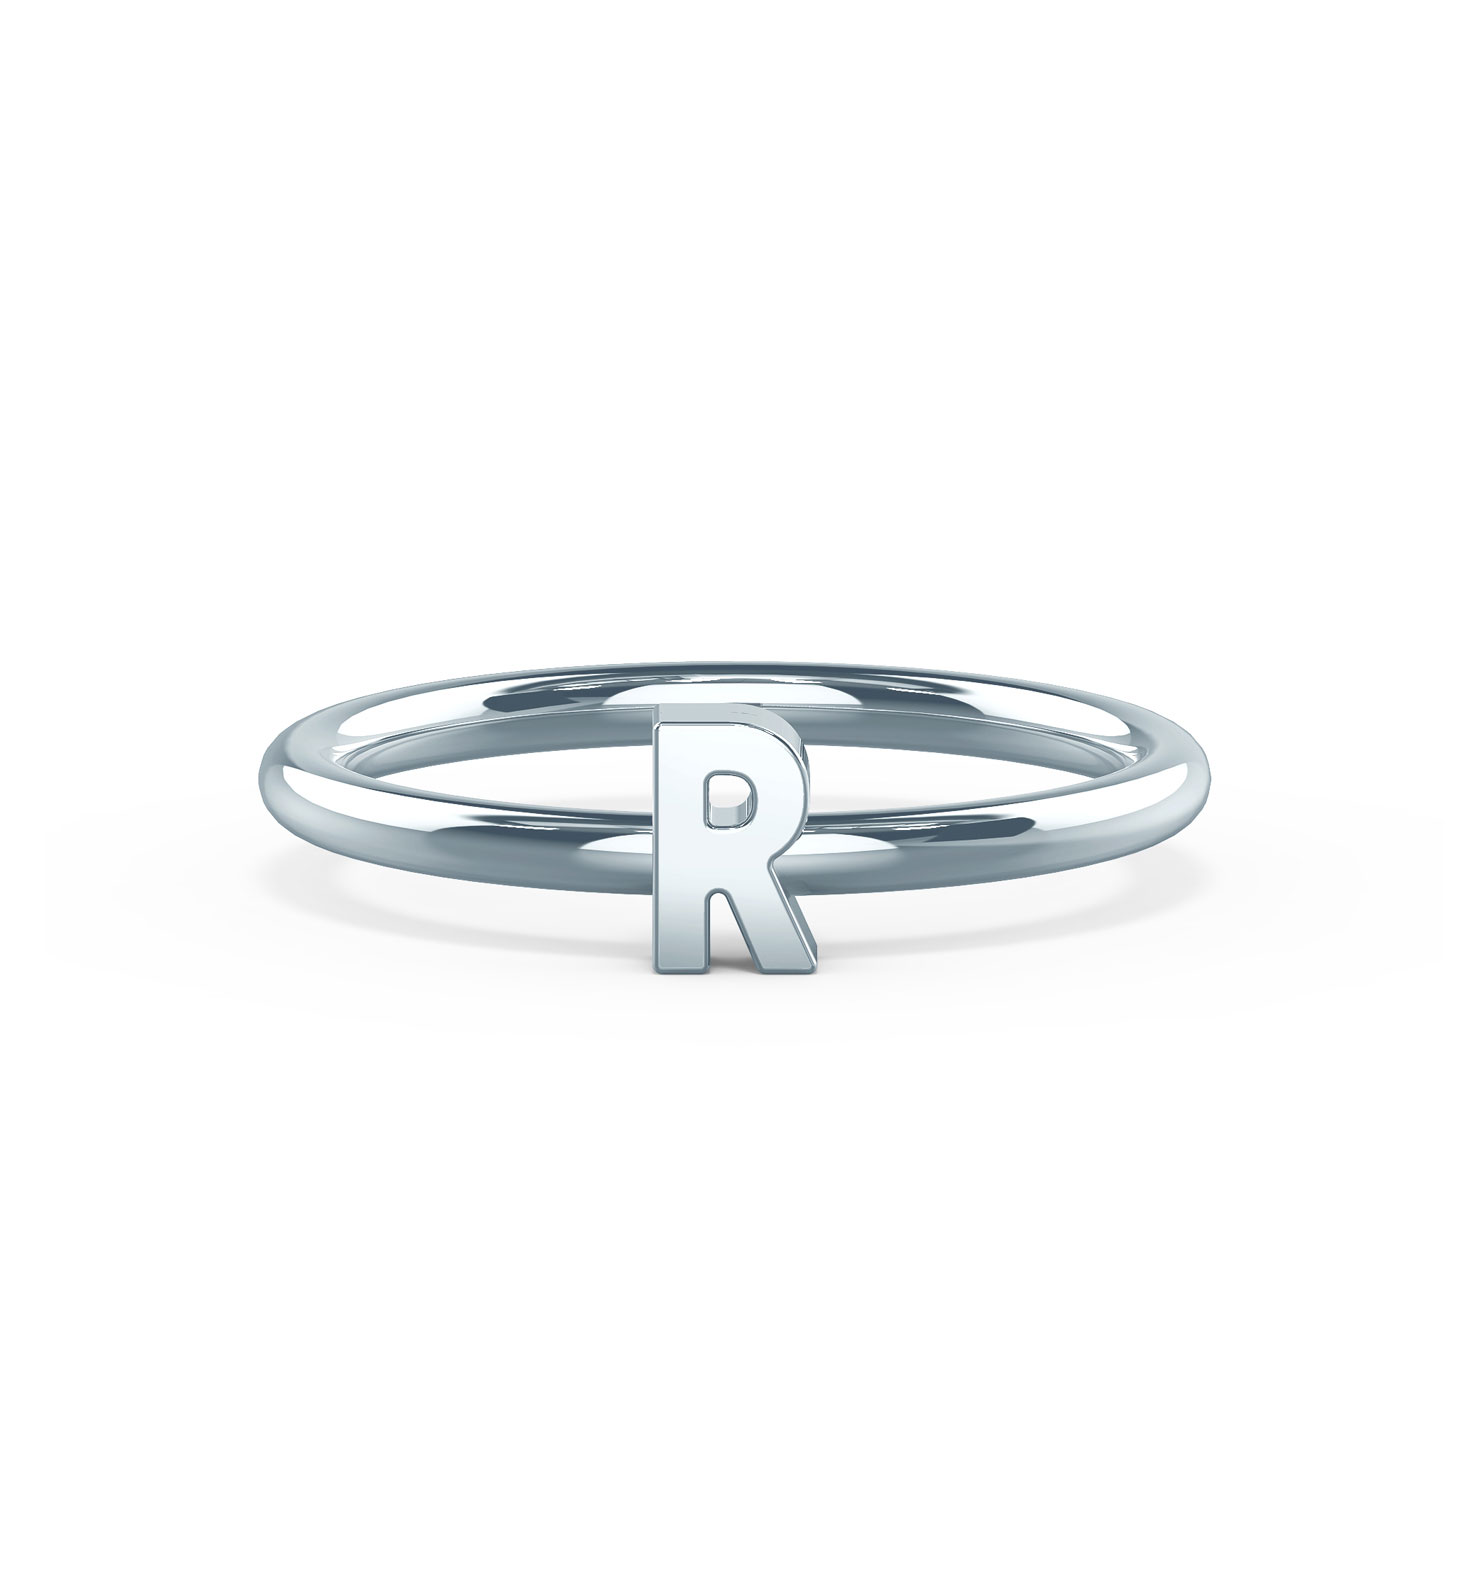 Best gifts, gift ideas for women - Tiary Letter Ring